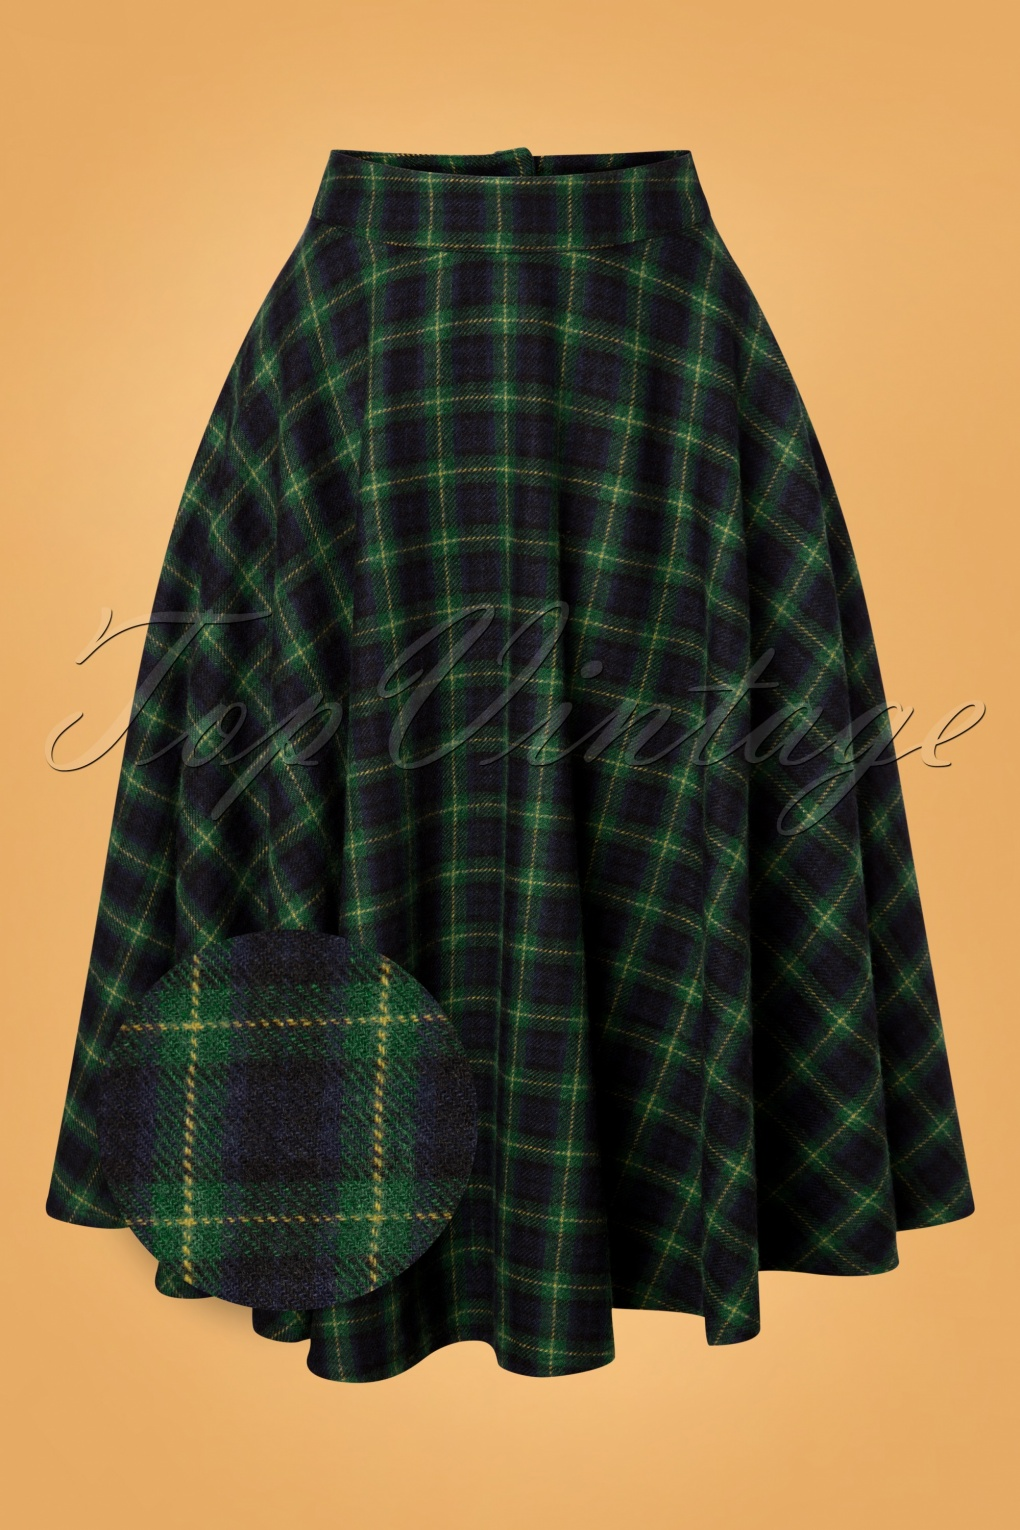 1940s Style Skirts- Vintage High Waisted Skirts 40s Sophie Wool Check Skirt in Forest Green £63.43 AT vintagedancer.com